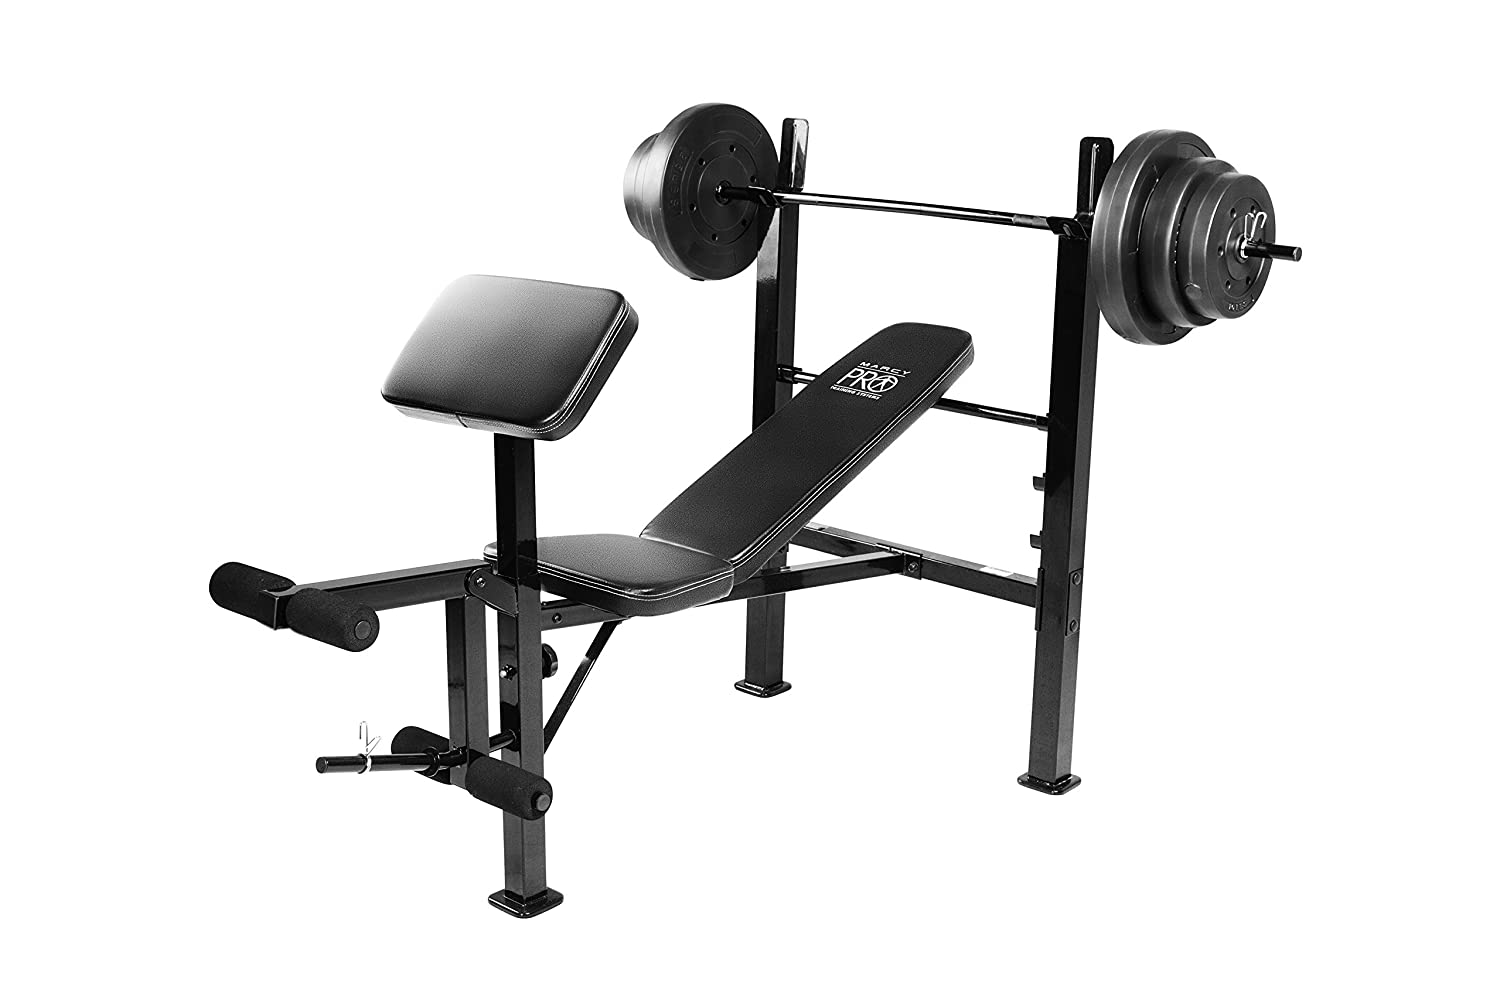 Amazoncom Marcy PM20115 Bench with Weight Set 100 lb Sports